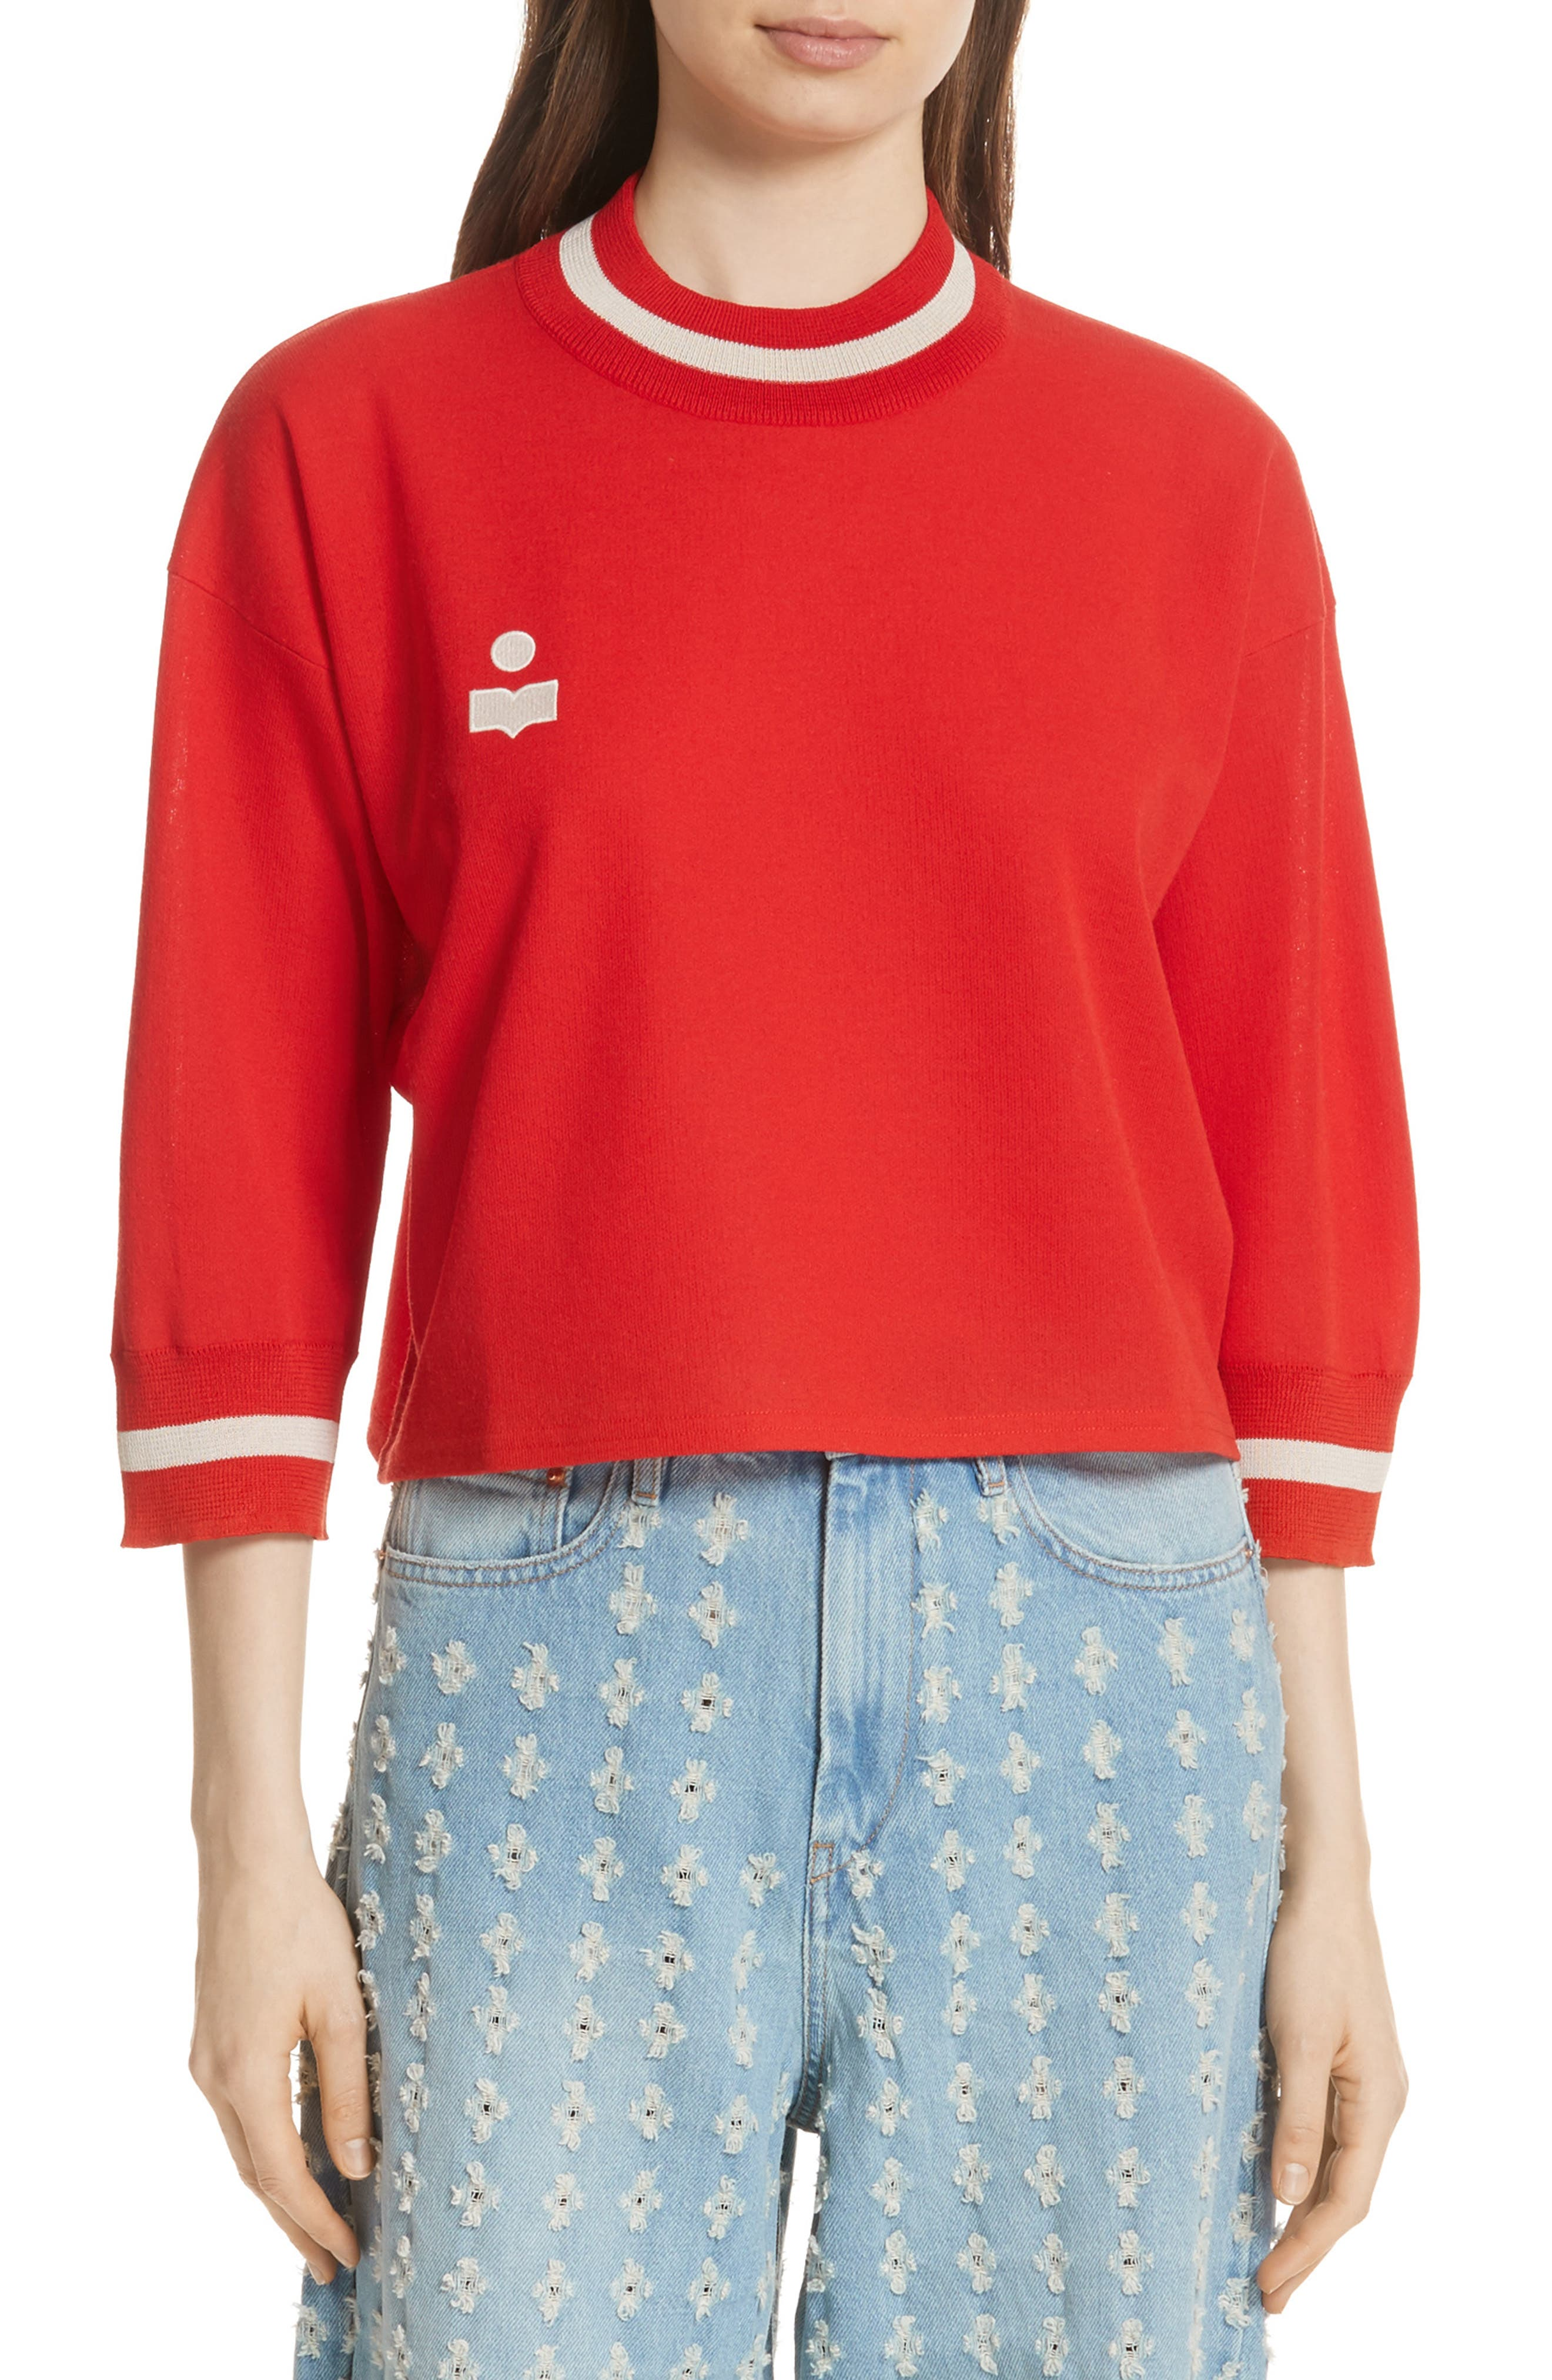 Dayton Crop Sweatshirt,                             Main thumbnail 1, color,                             600